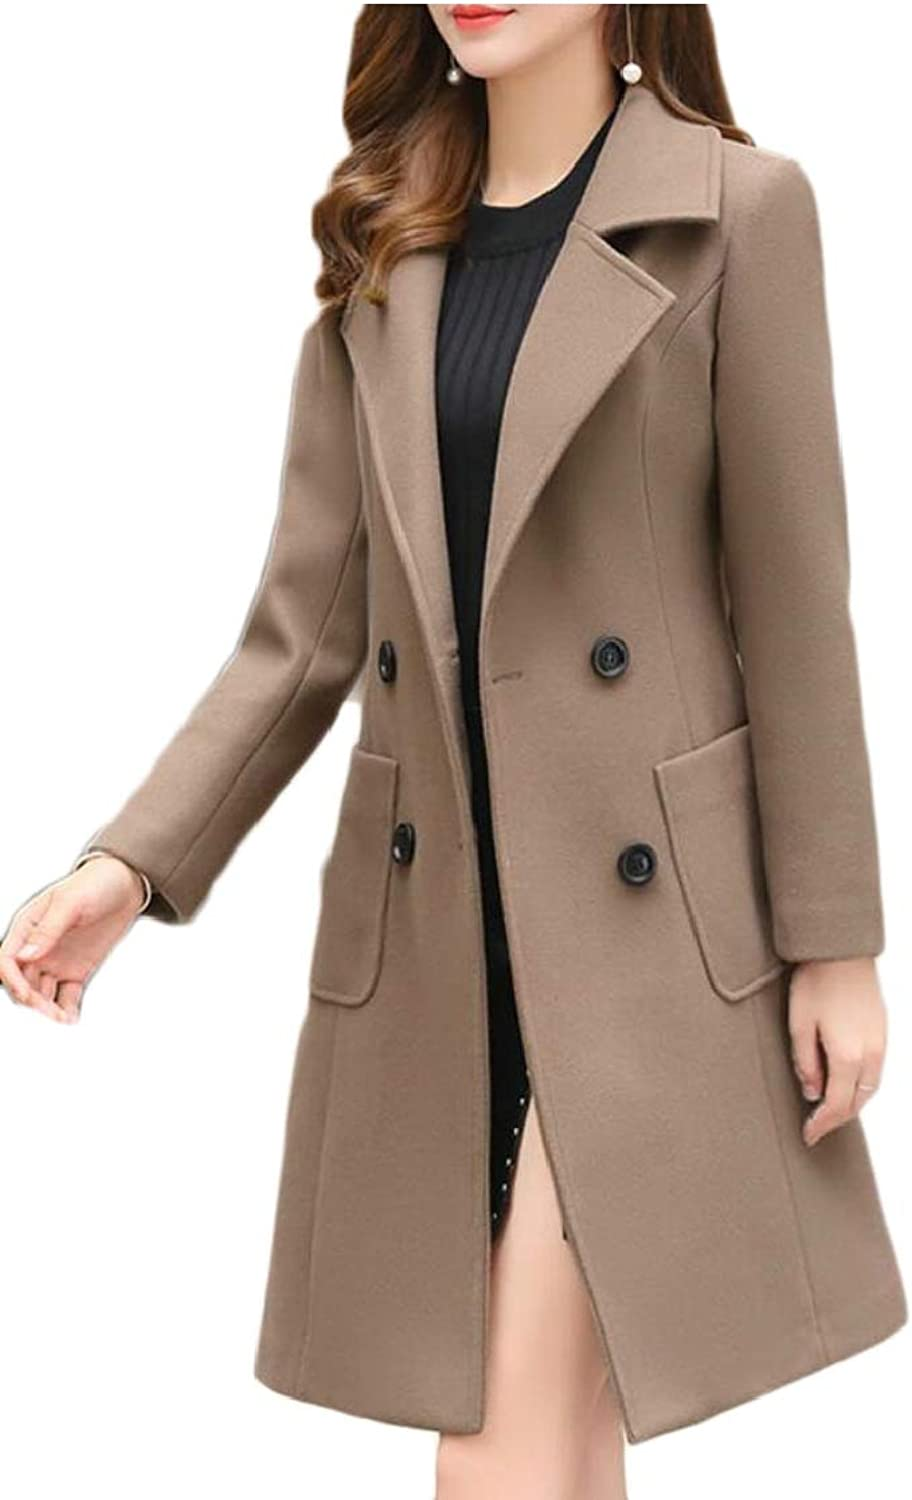 Desolateness Women's Classic Double Breasted Laple Long Wool Trench Coat Overcoats